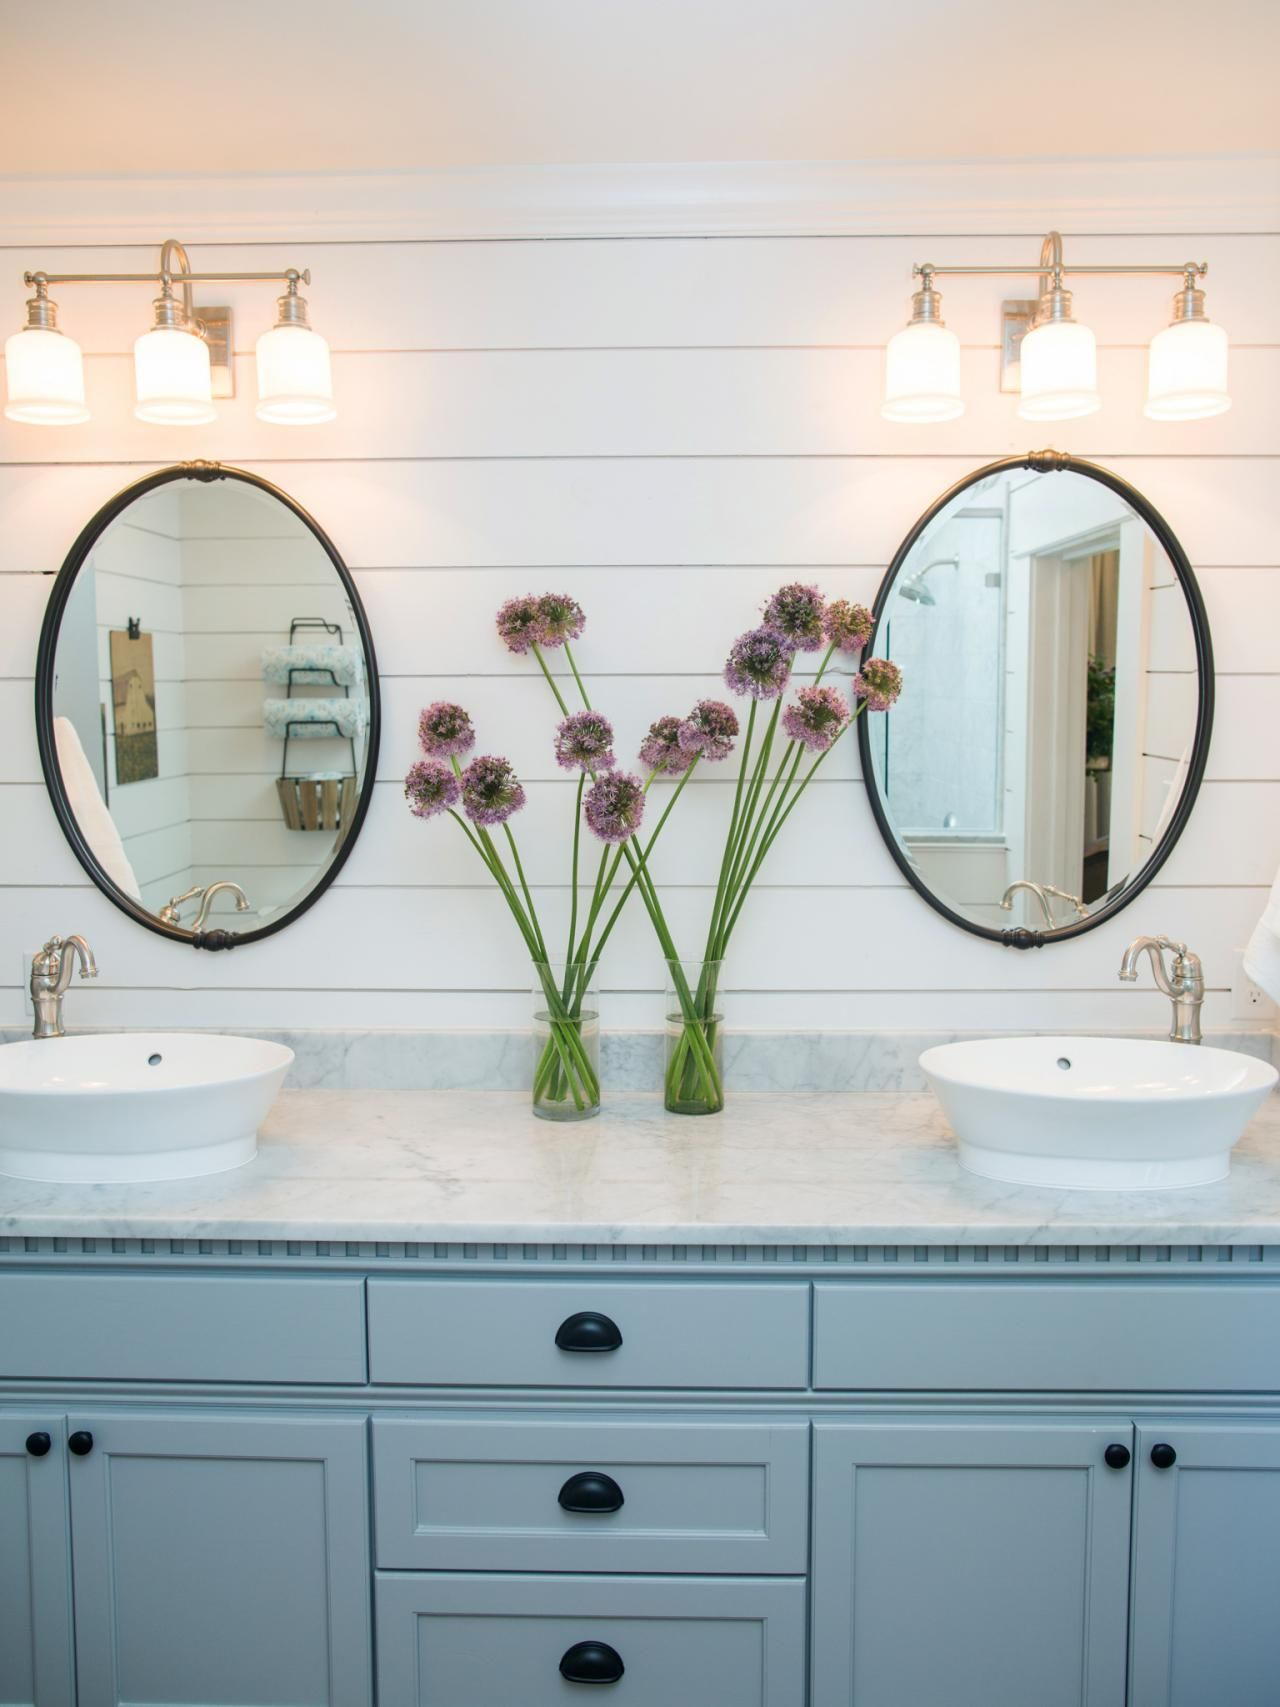 Bathroom Mirror Not Over Sink 5 things every 'fixer upper'-inspired farmhouse bathroom needs